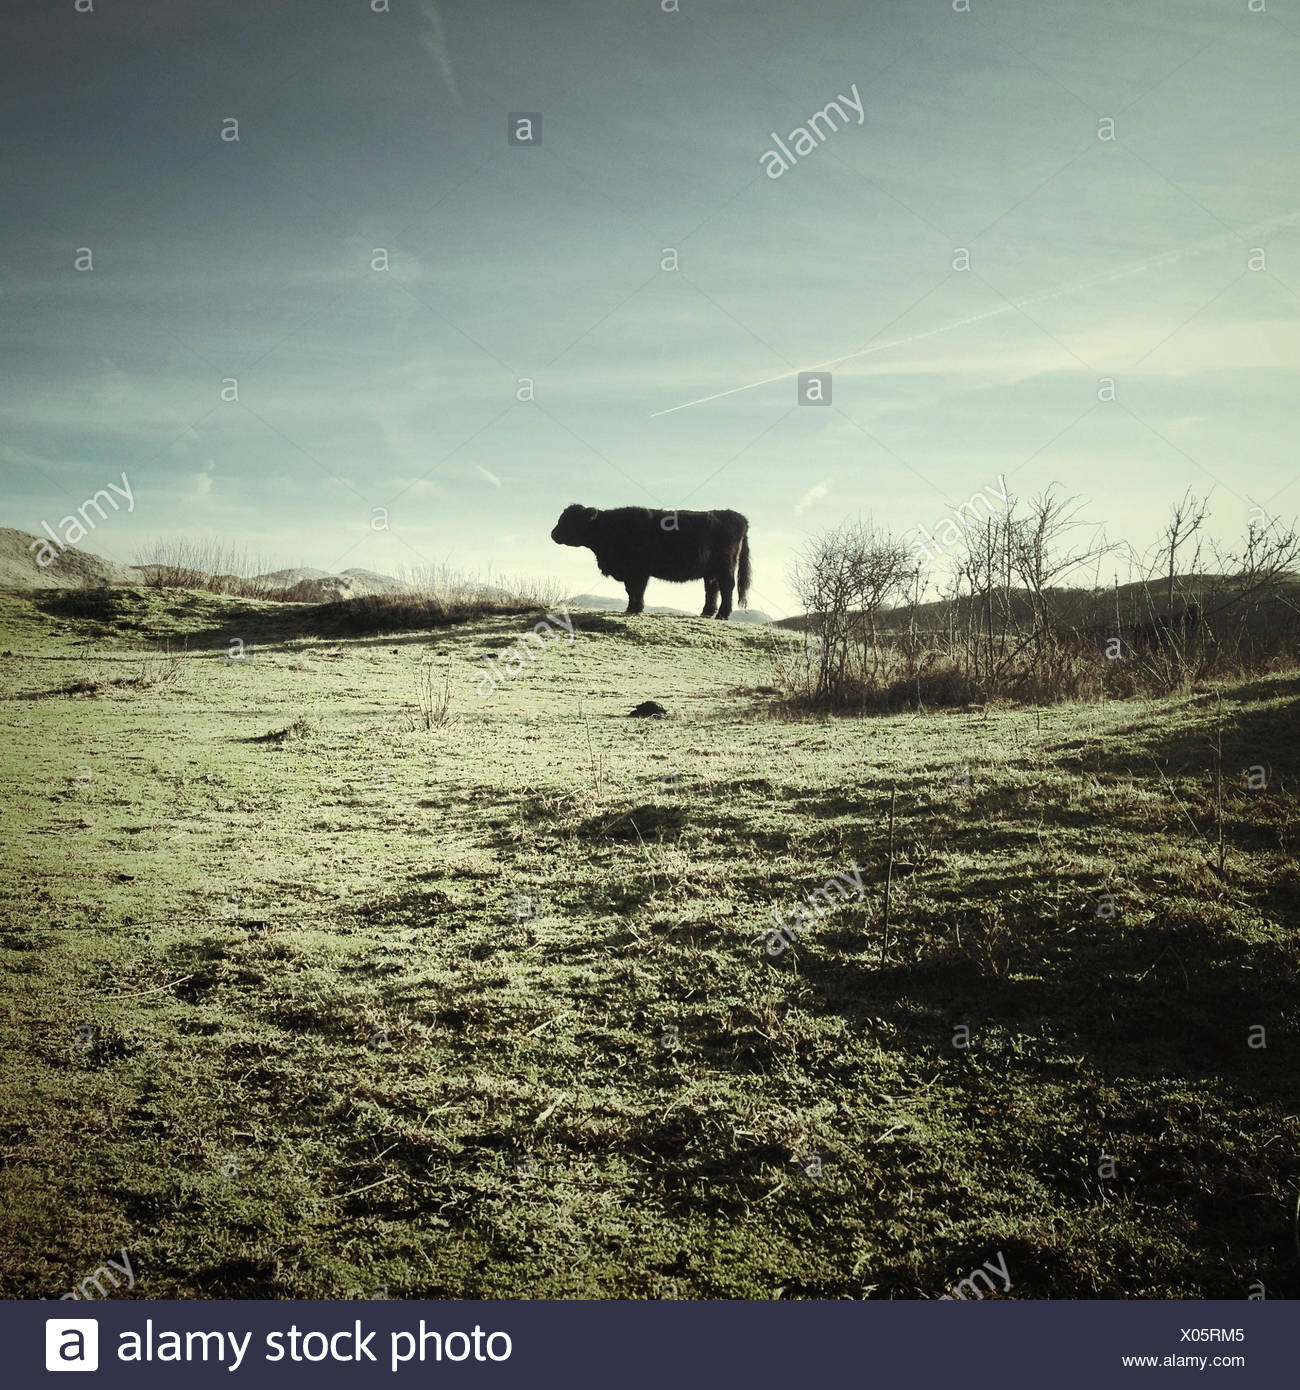 Side view of cow on pasture - Stock Image